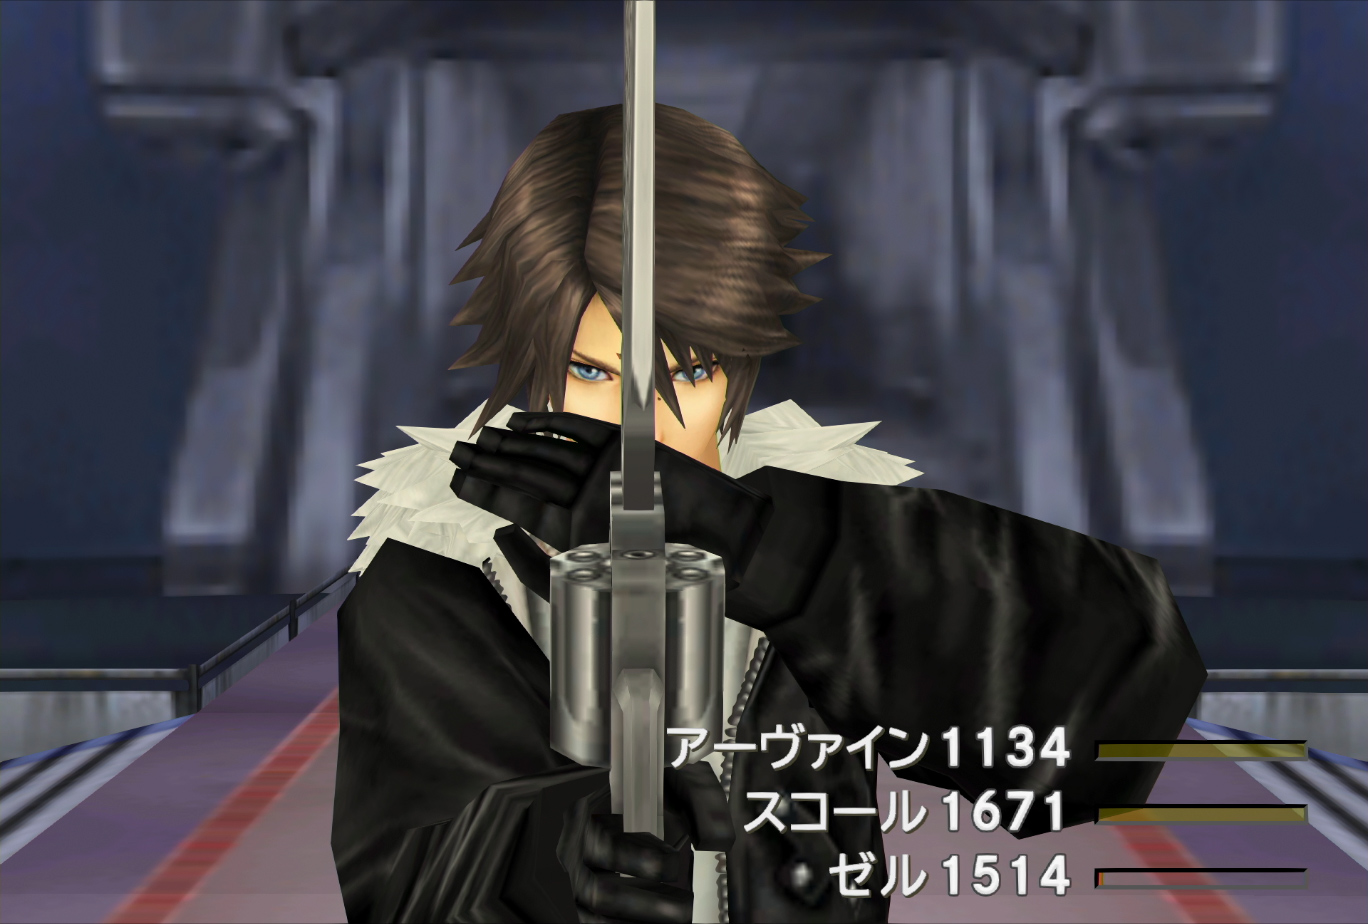 『FINAL FANTASY VIII Remastered』とは2